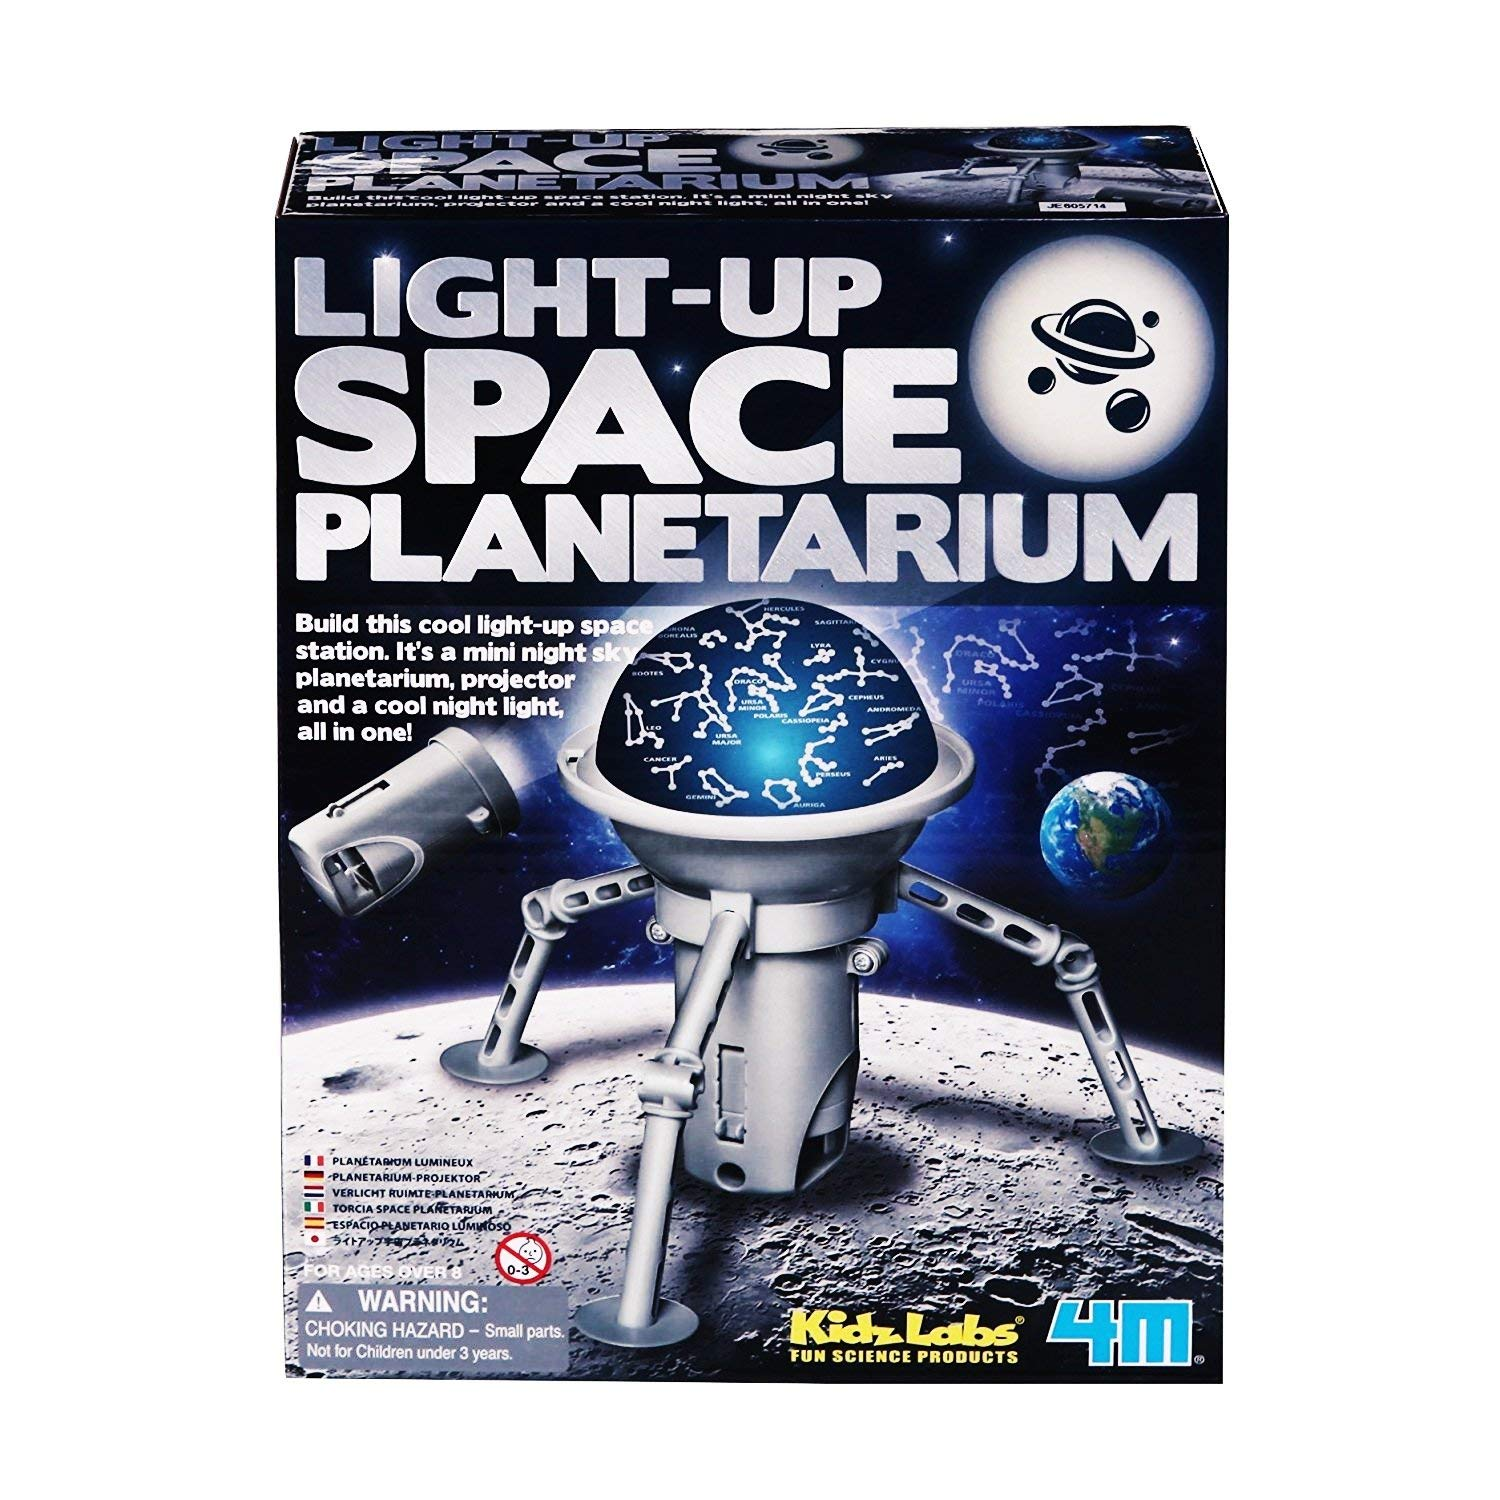 4M Kidz Labs Light-up SPACE PLANETARIUM Build This Cool Light-up Space Station Hand Assembled Toys Interesting Interactive Games